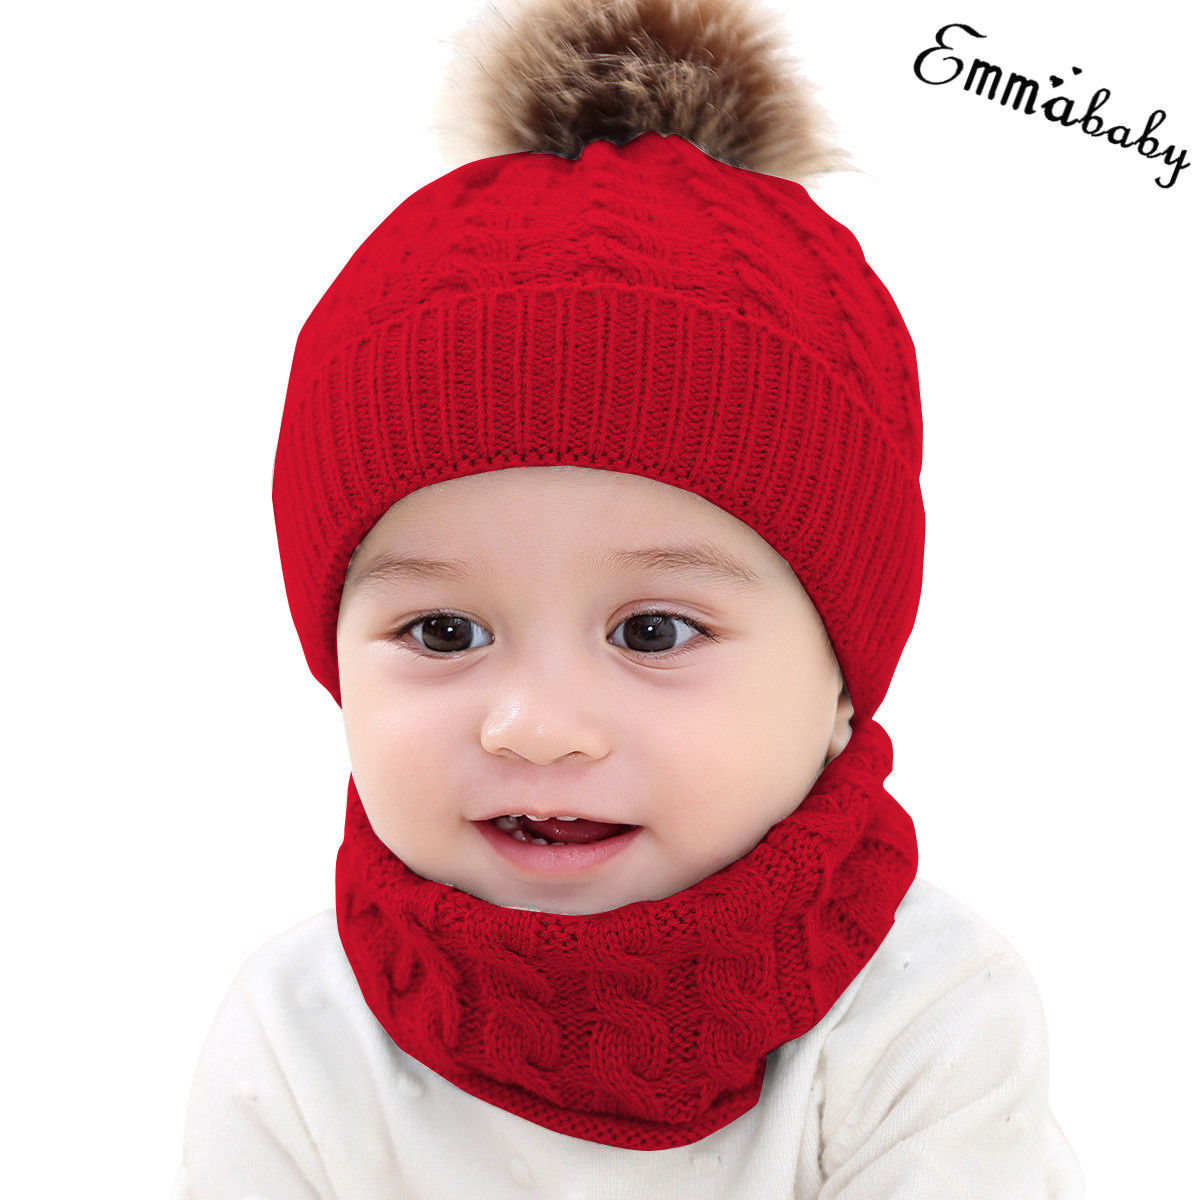 710263c68678 Brand Newest Baby Boy Girl Knit Girl Winter Warm Soft Hat Toddler Kid Beanie  Crochet Cap